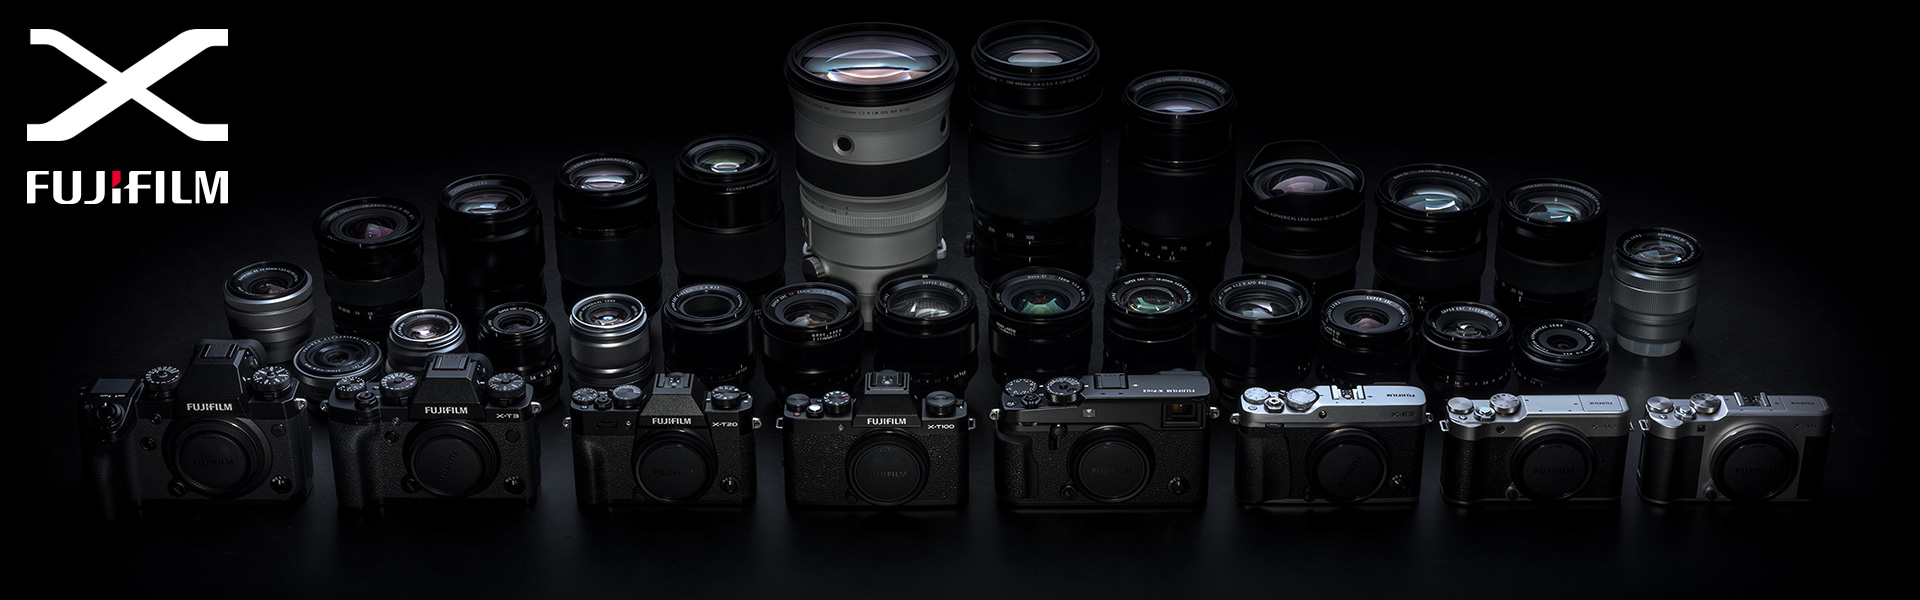 Hero Image of X System cameras and lenses